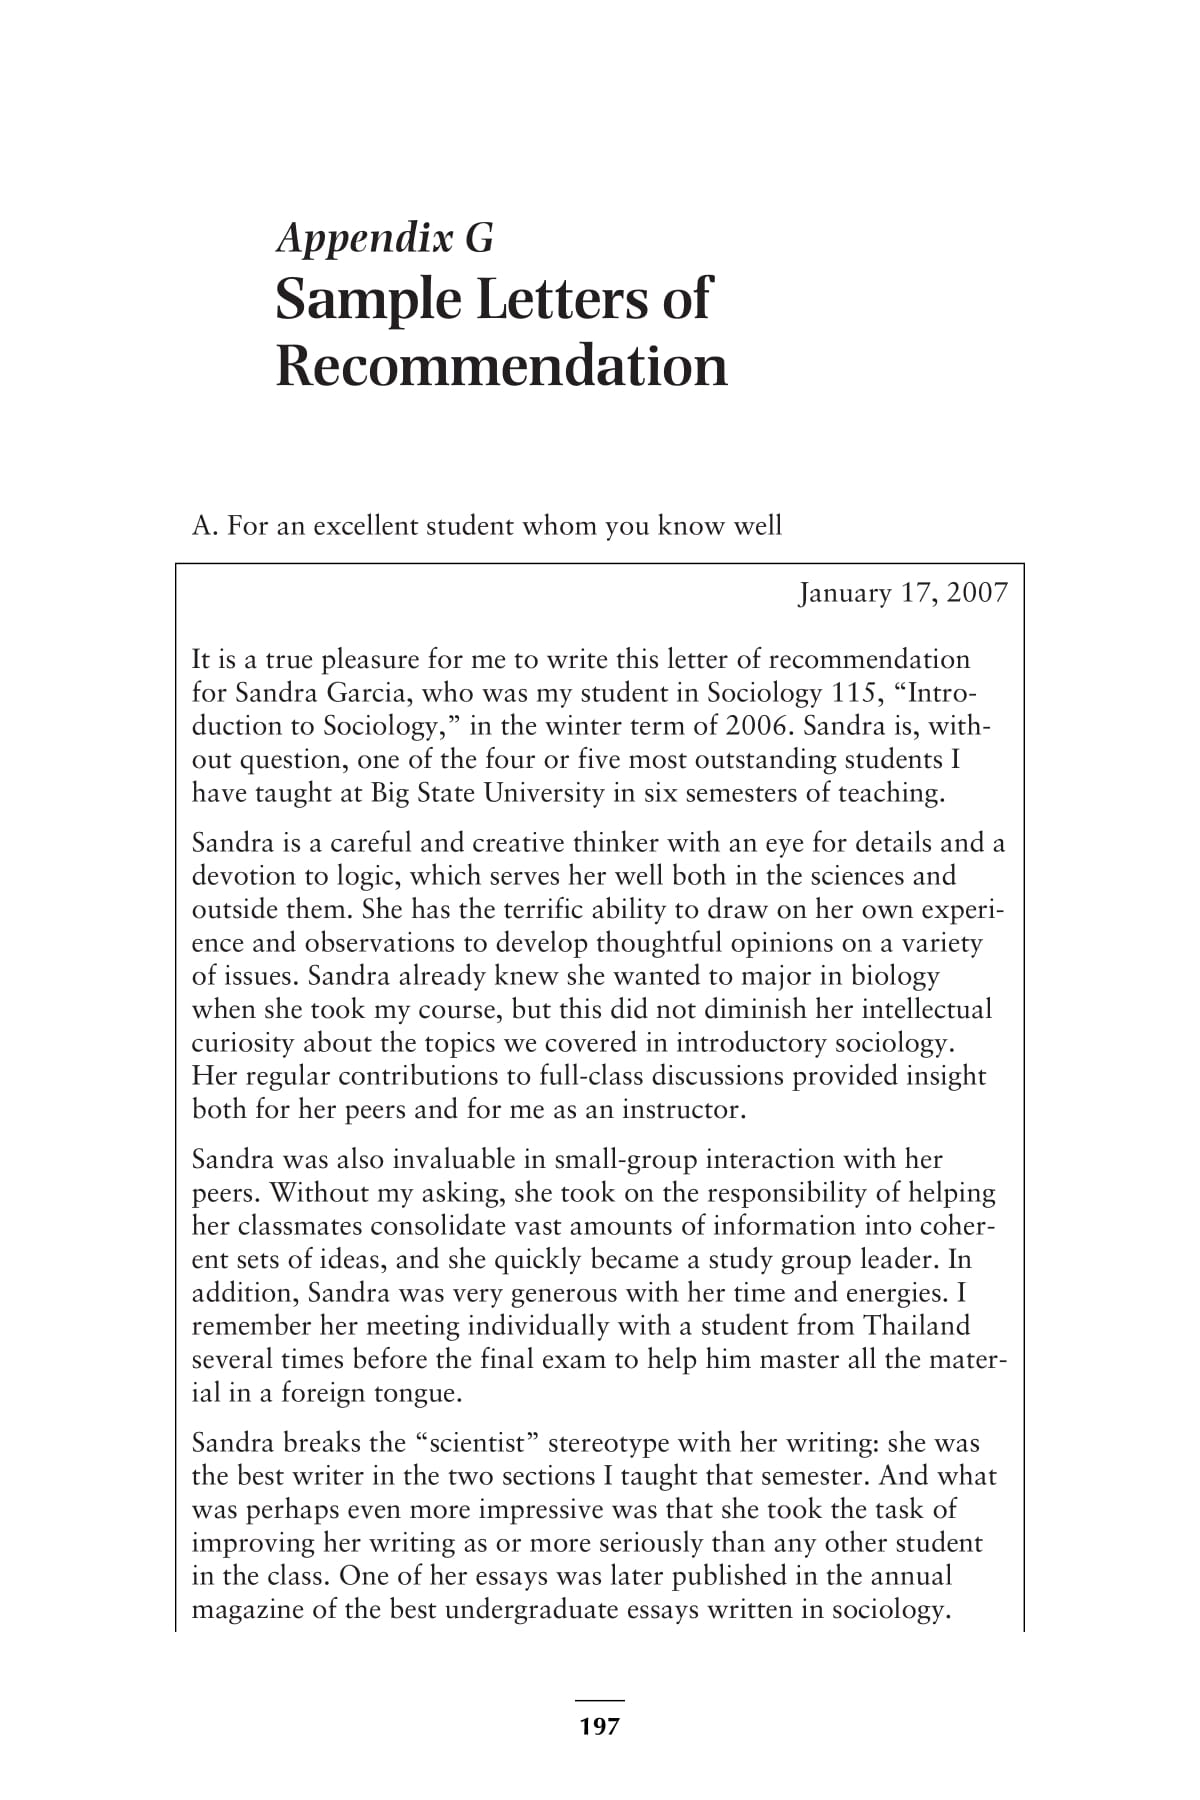 recommendation letter examples 1